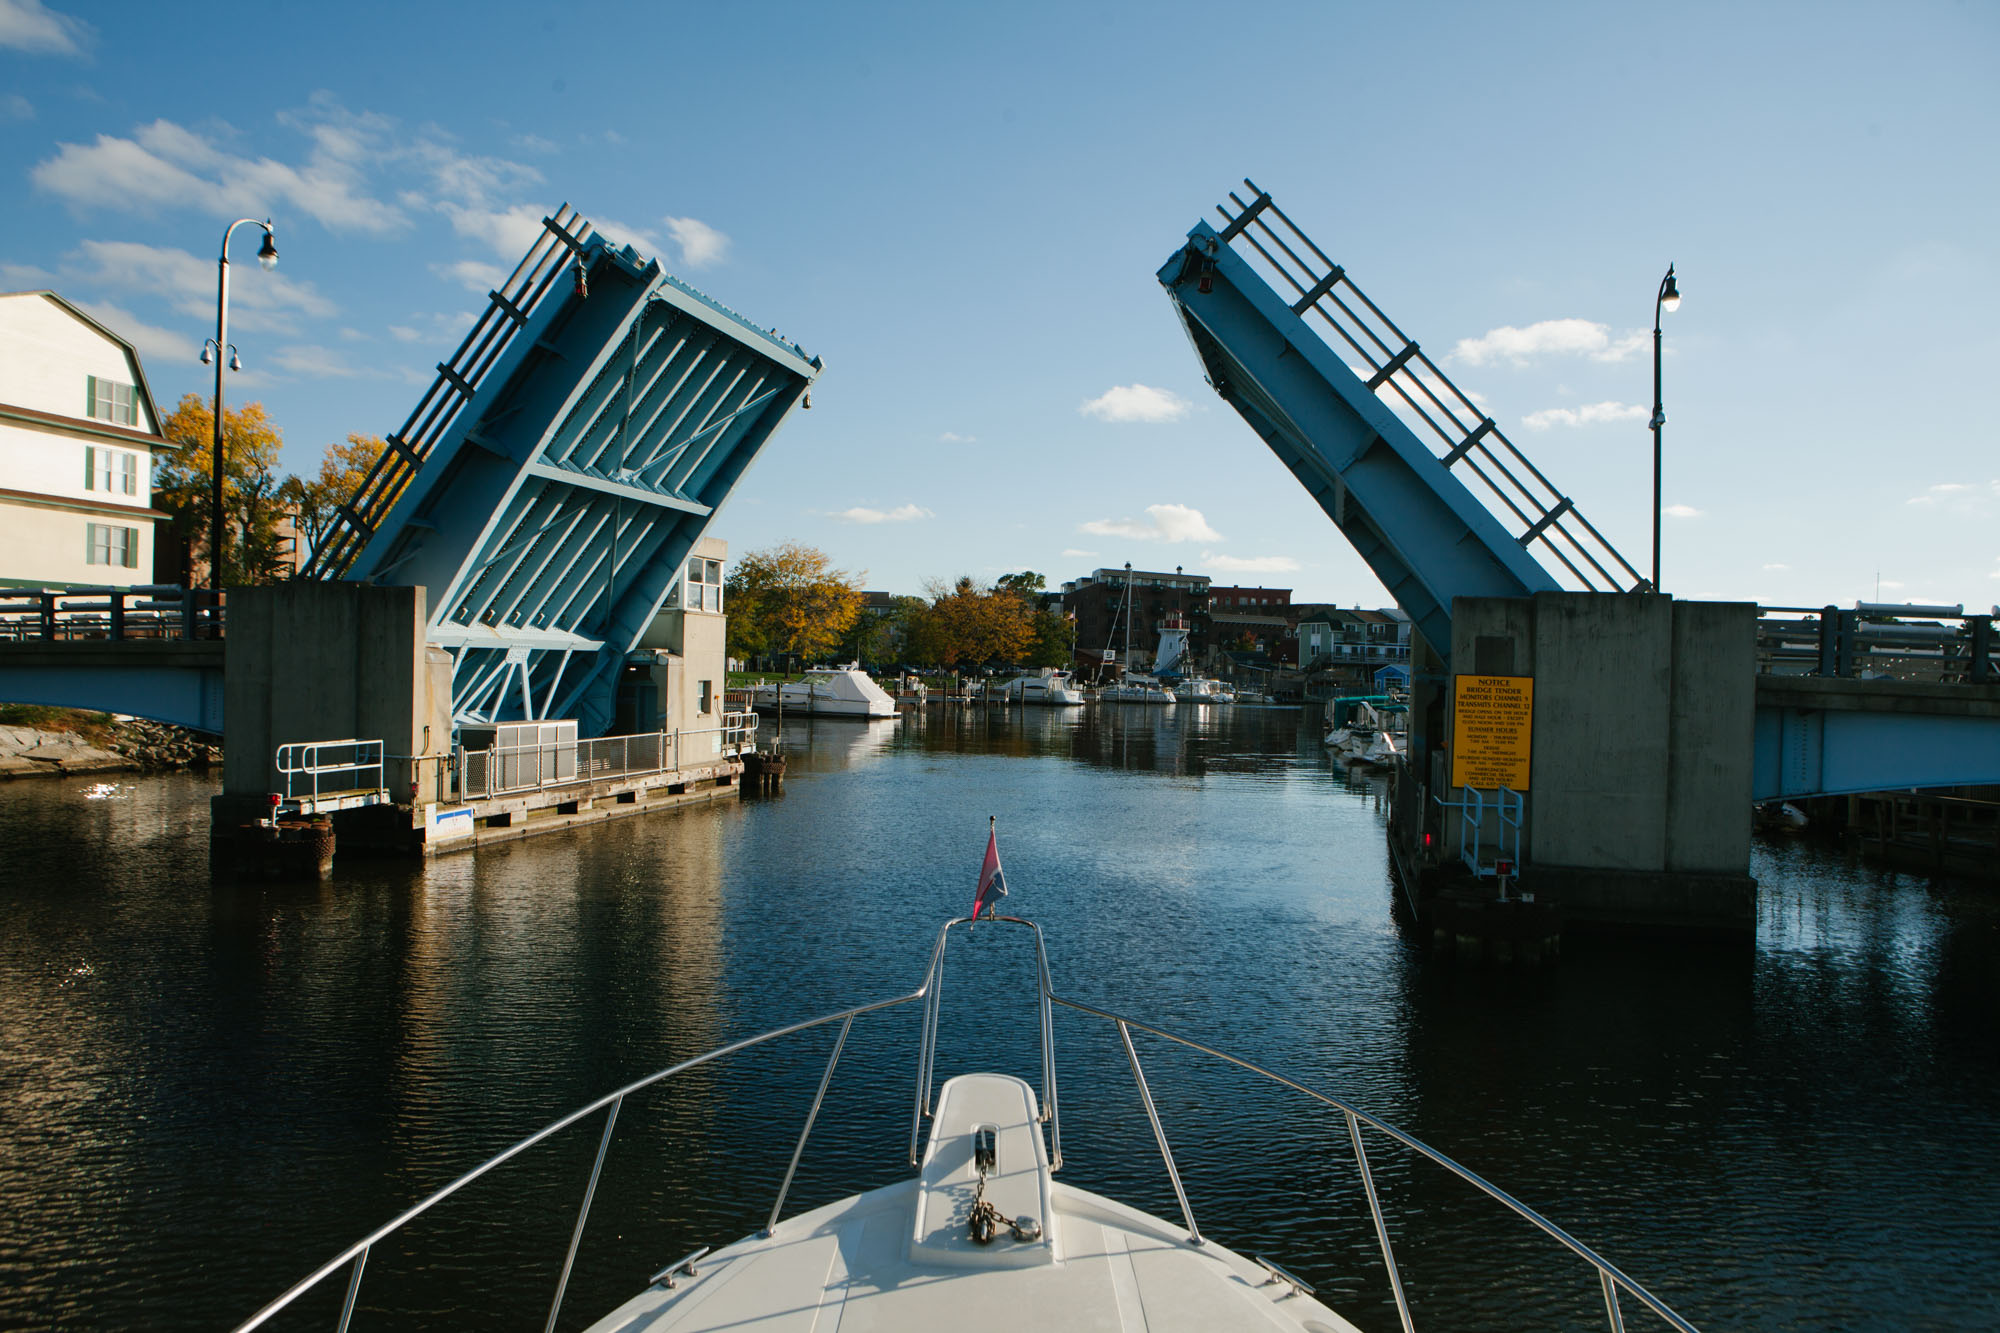 021_SouthHaven_3782